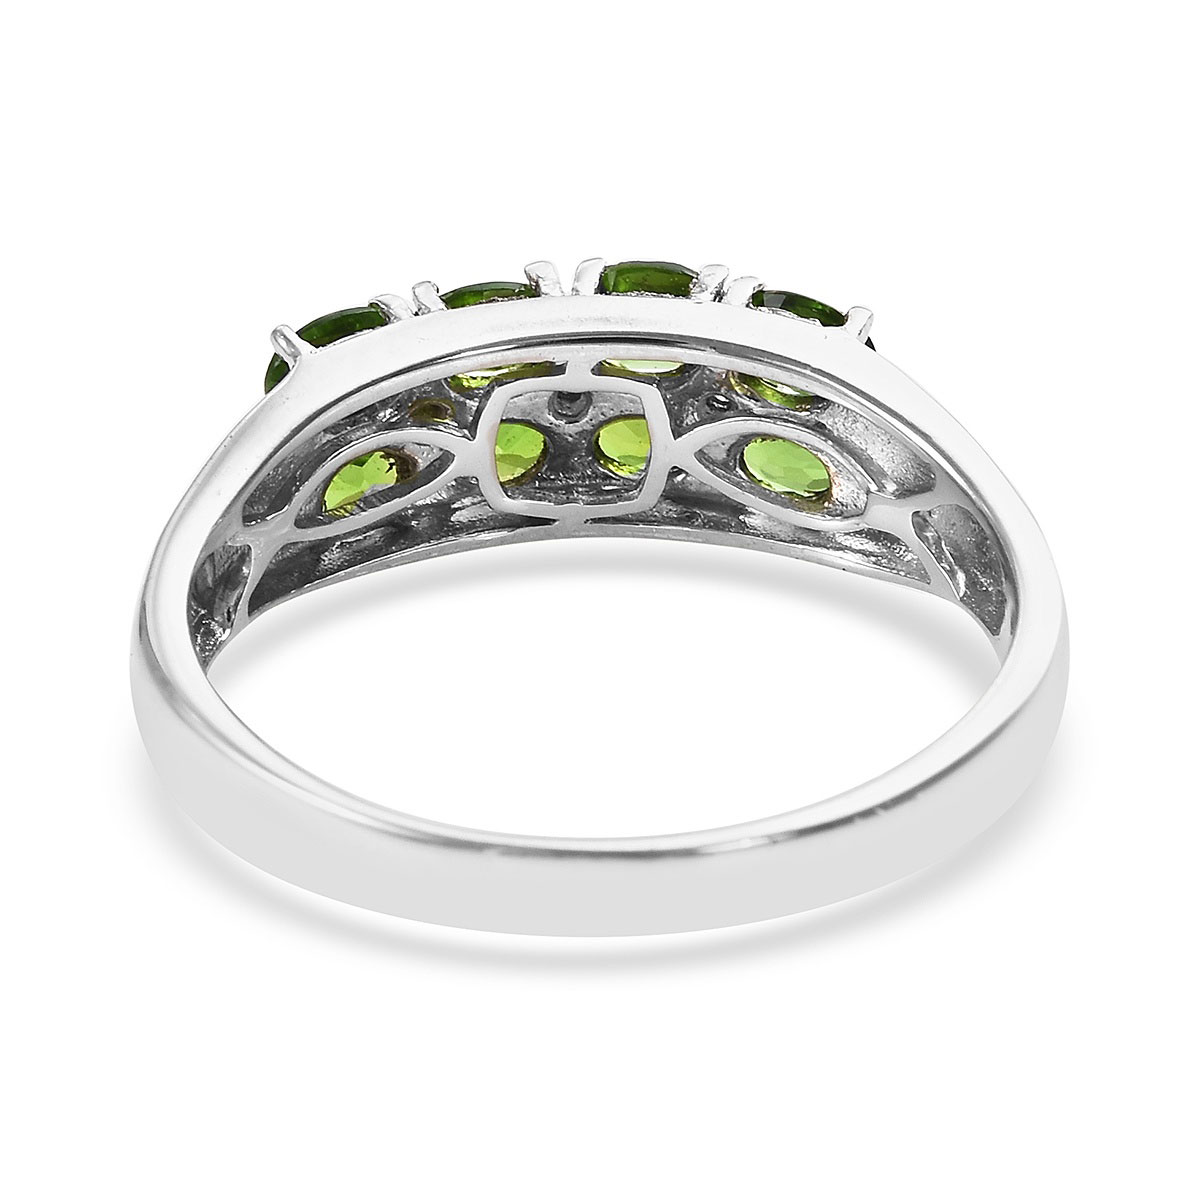 Russian Diopside Ring in Platinum Over Sterling Silver (Size 8.0) 1.50 ctw